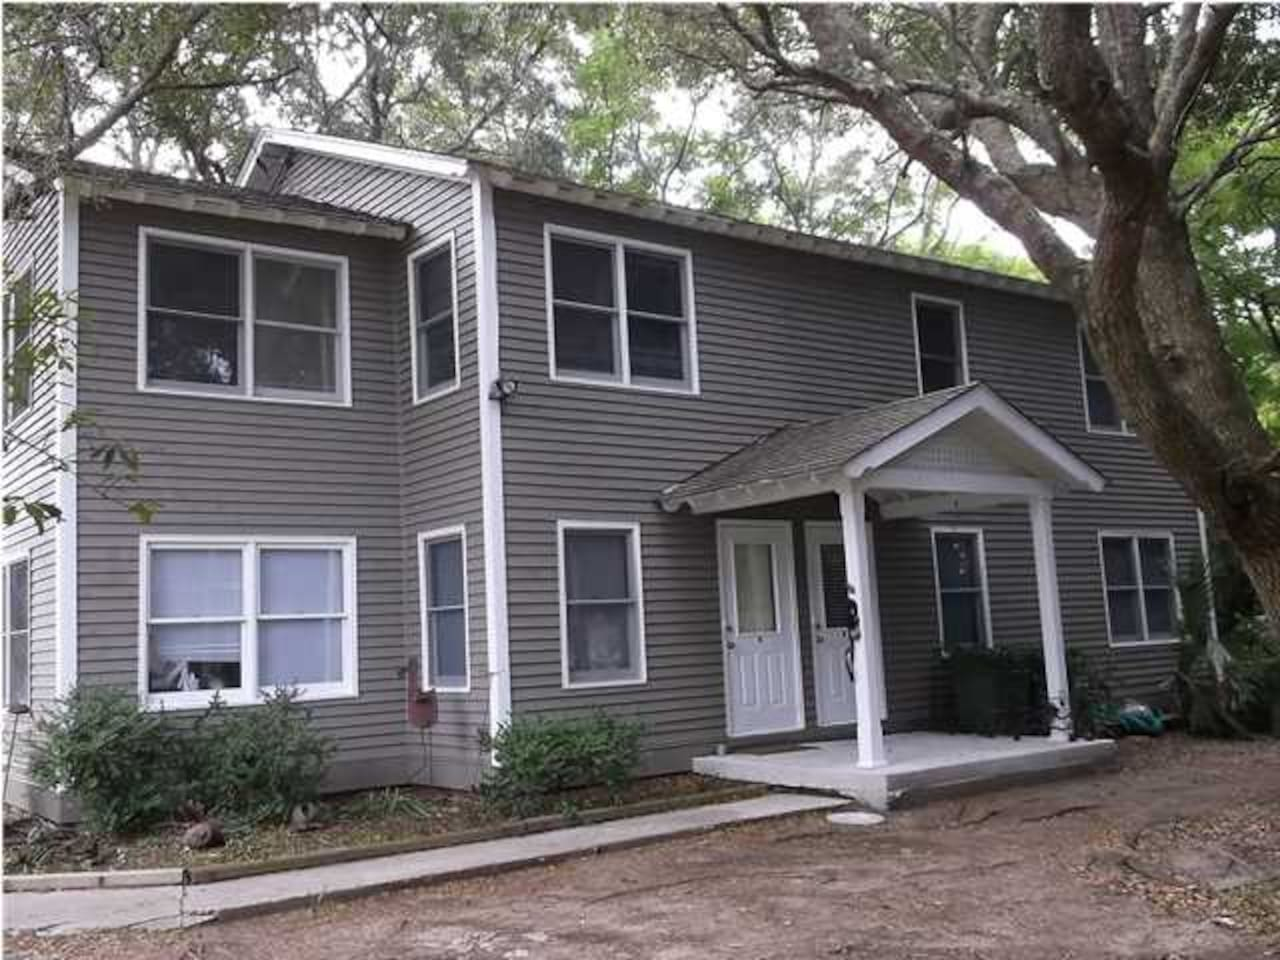 Shady, quiet residential neighborhood steps from the beach!